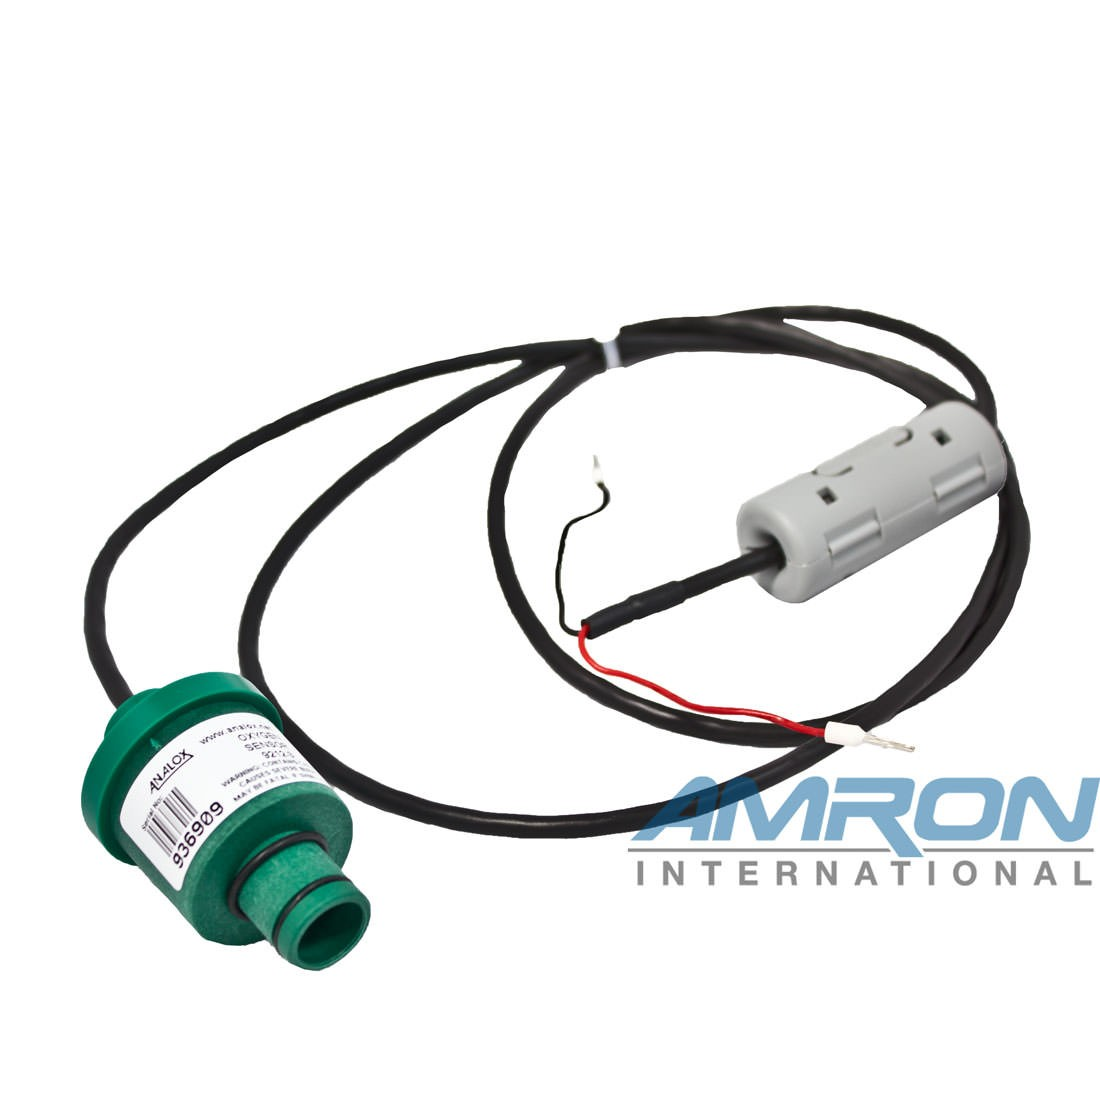 Analox Replacement Oxygen (O2) Sensor (0-100%) for Ax 1000 Oxygen Monitor 9100-9212-3